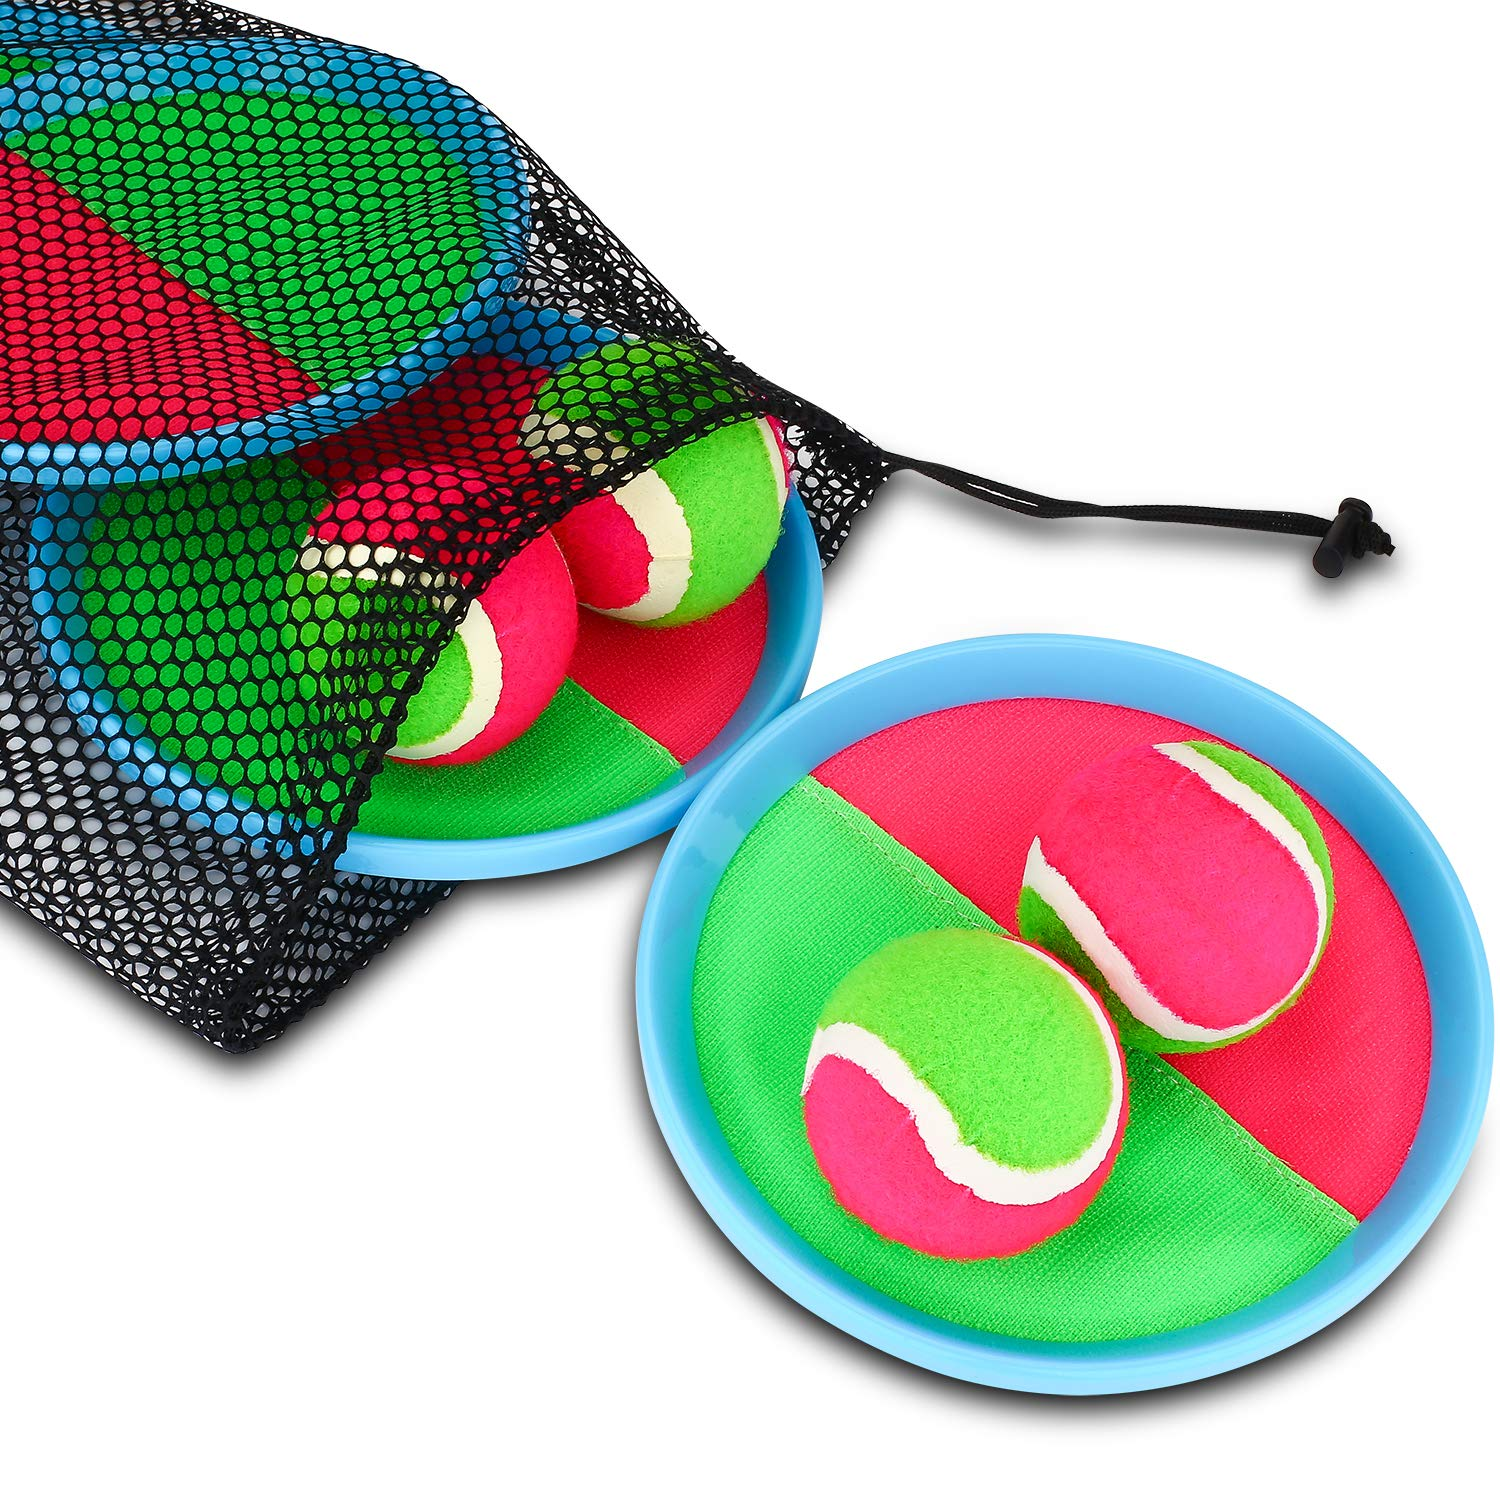 Ayeboovi Paddle Toss and Catch Ball Set for Kids- Self Stick Paddle Game with 4 Paddles, 4 Balls and 1 Storage Bag for Children by Ayeboovi (Image #8)